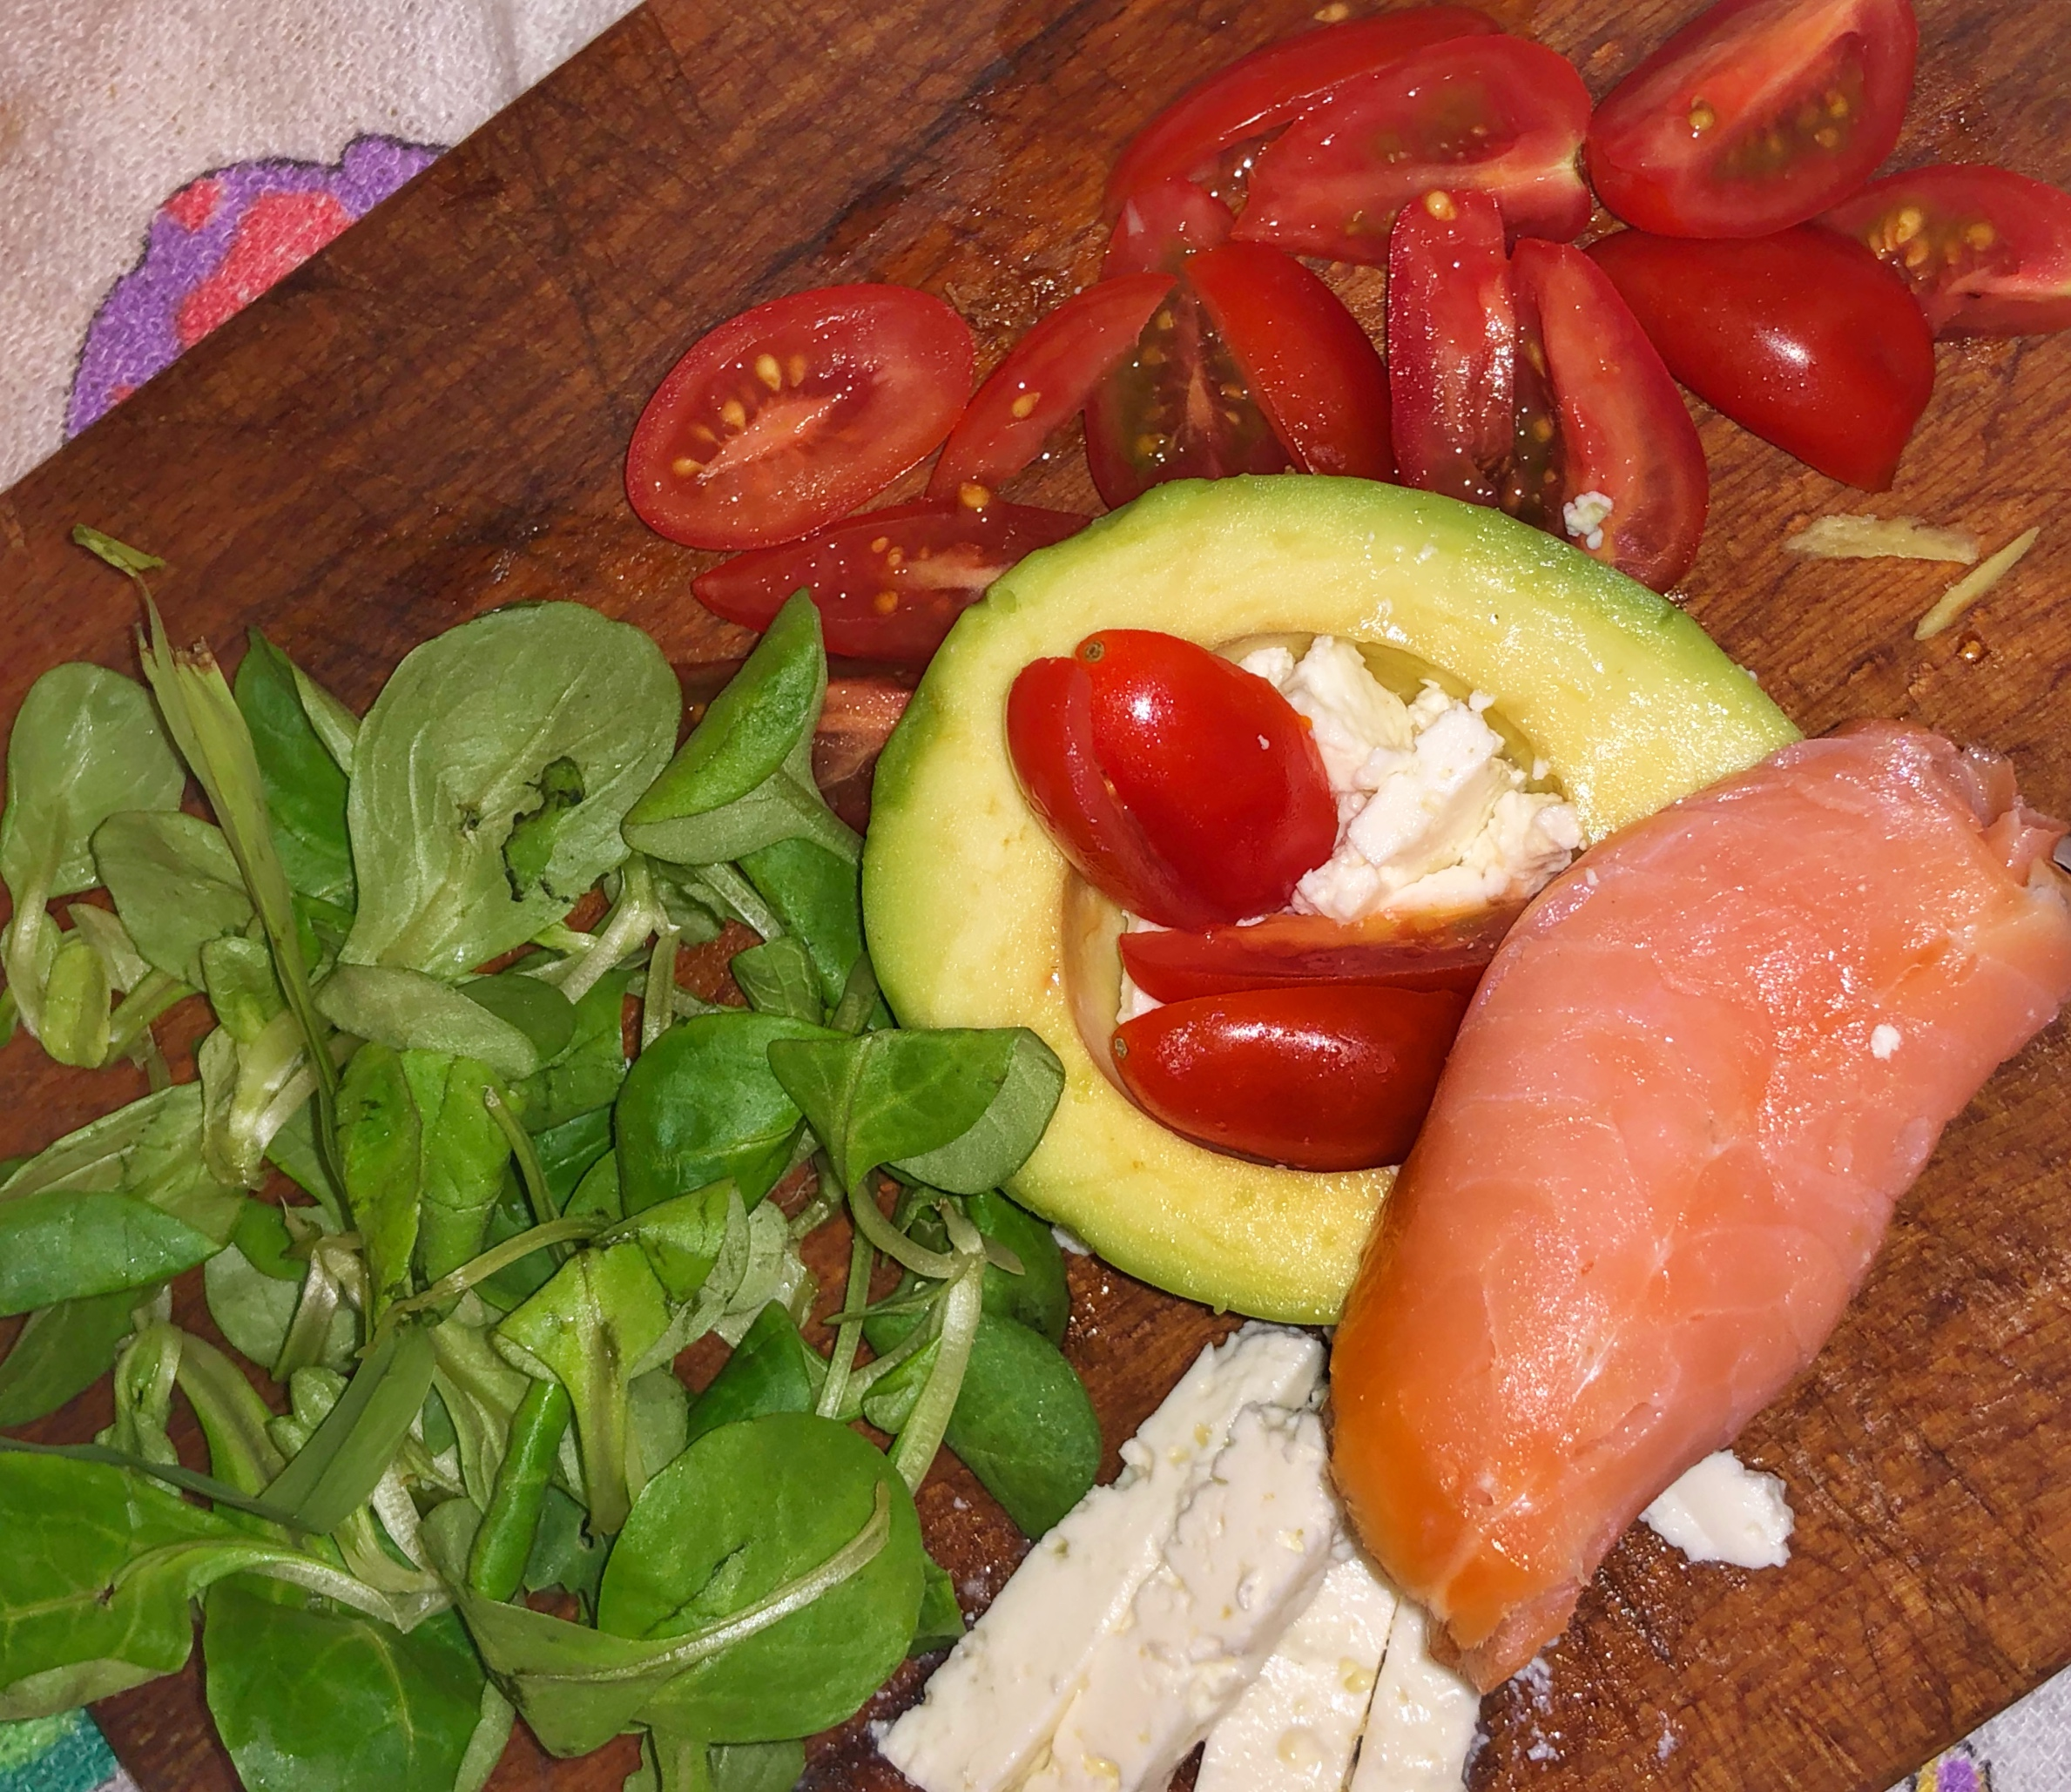 Salmon, Avocado, Cherry Tomatoes and a bit of Rapunzel Salad for a healthy meal